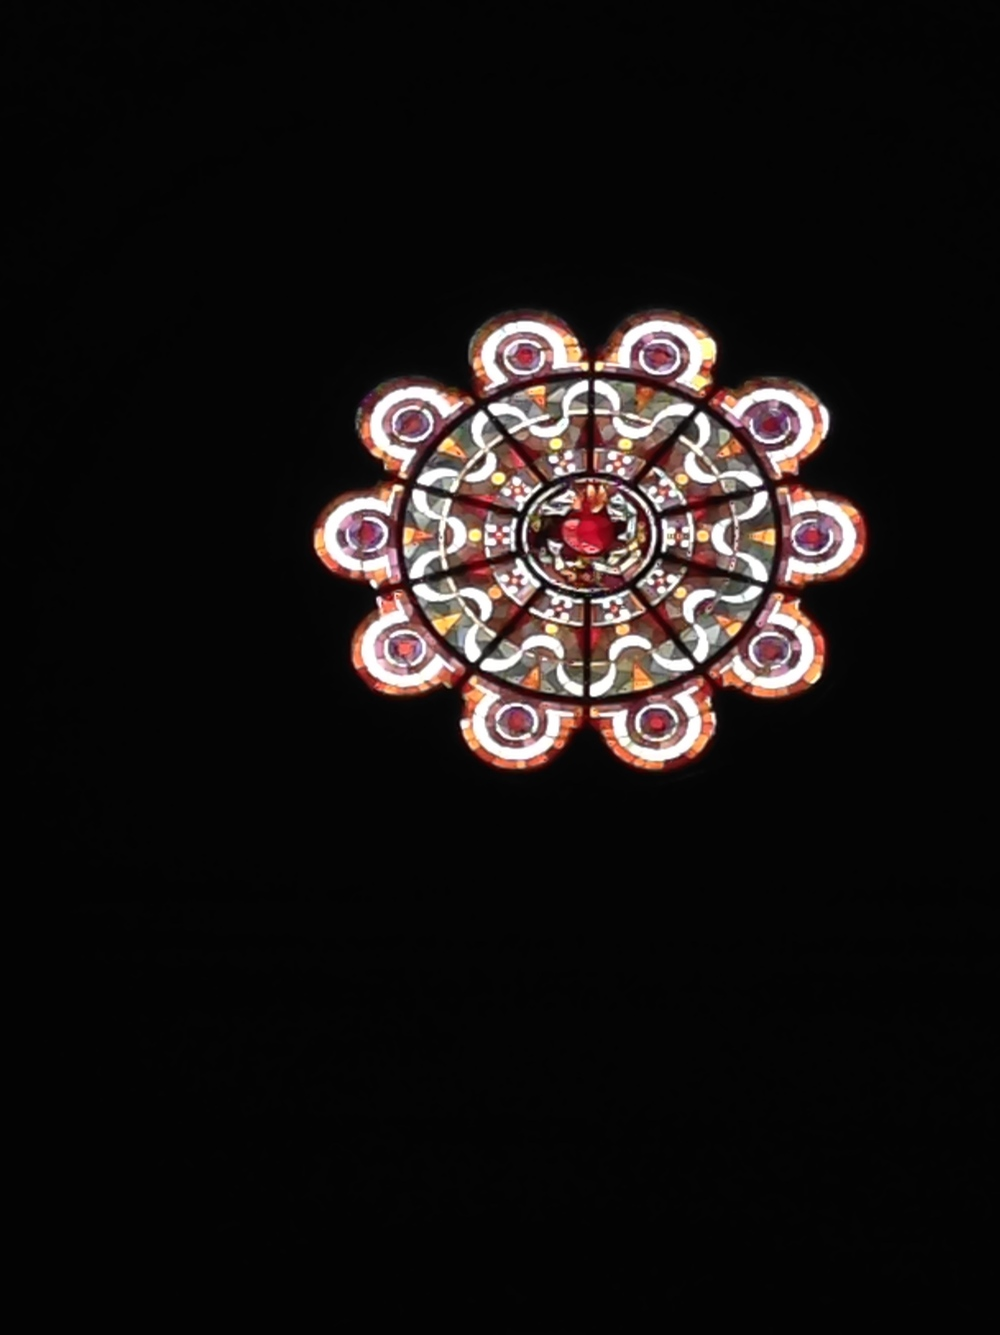 Stained glass rosette, Sacré Coeur